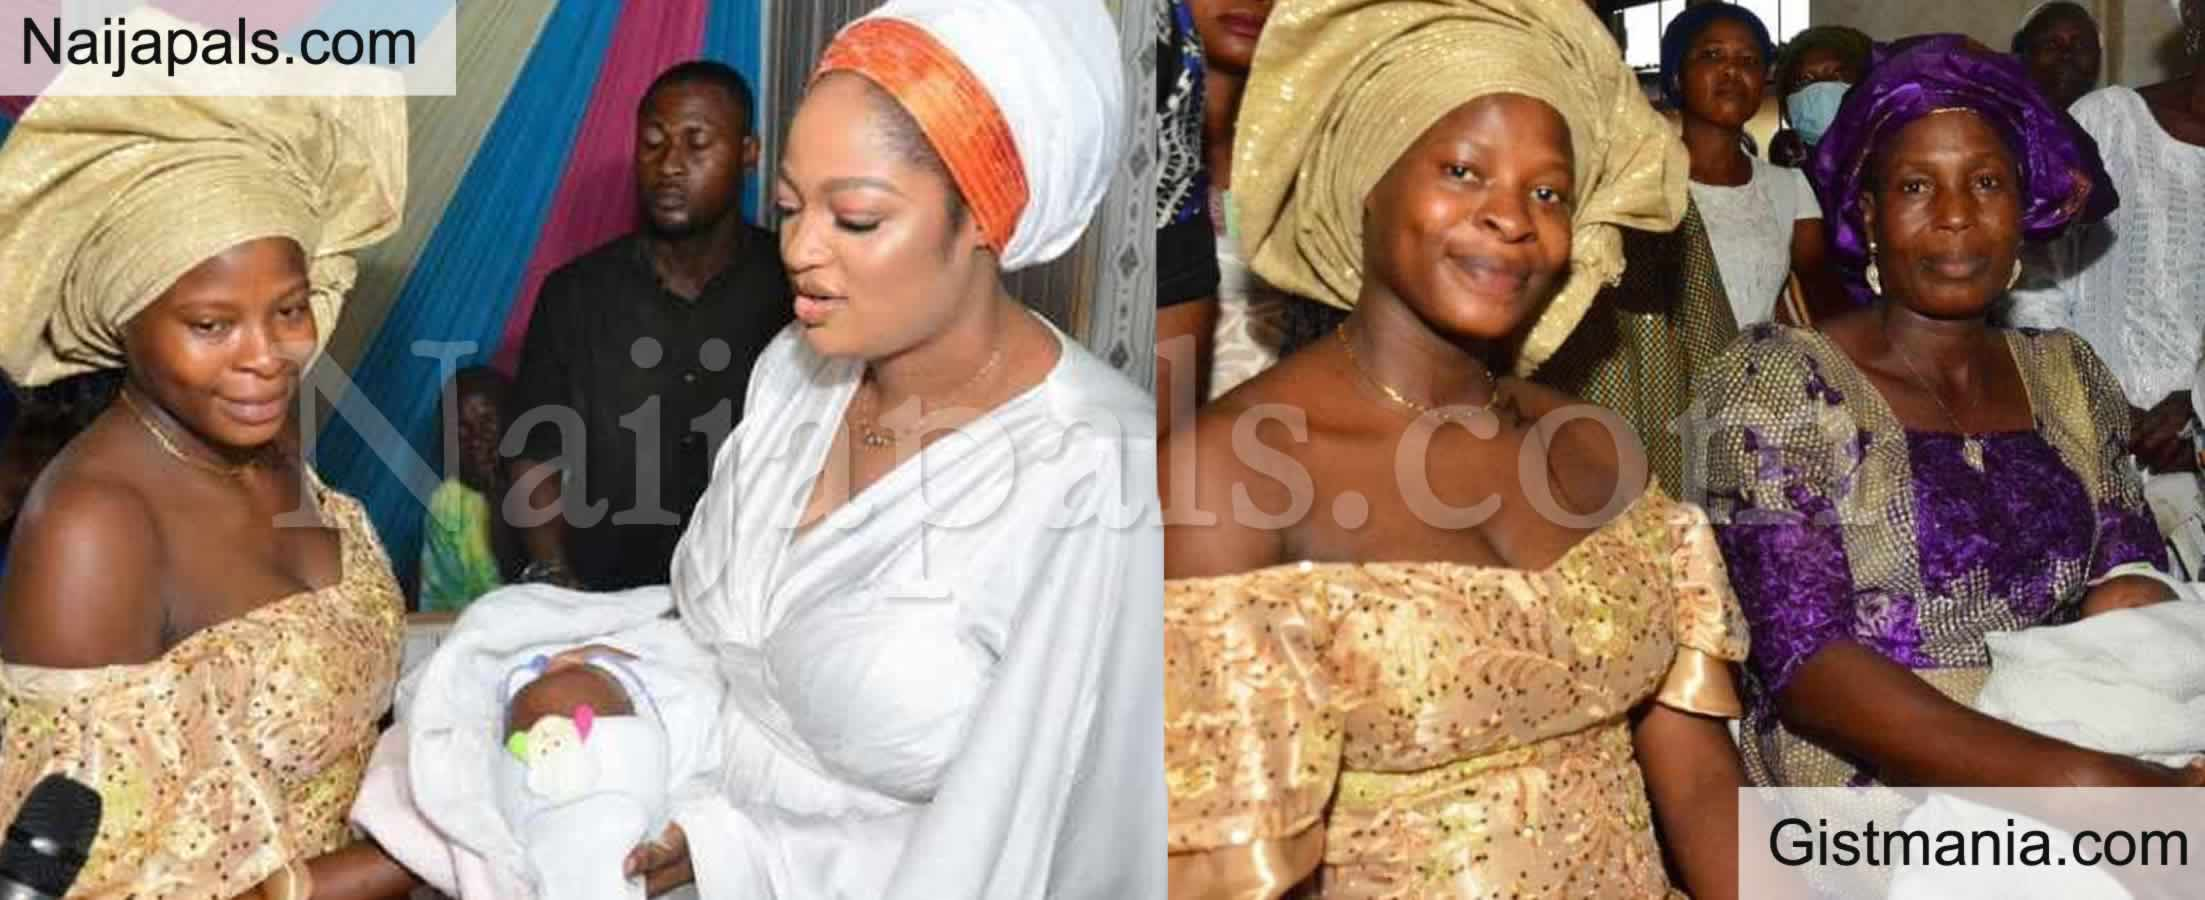 <img alt='.' class='lazyload' data-src='https://img.gistmania.com/emot/photo.png' /> PHOTOS: <b>Ooni of Ife's Wife, Naomi Attends Naming Ceremony of Released EndSARS Protester's Child</b>